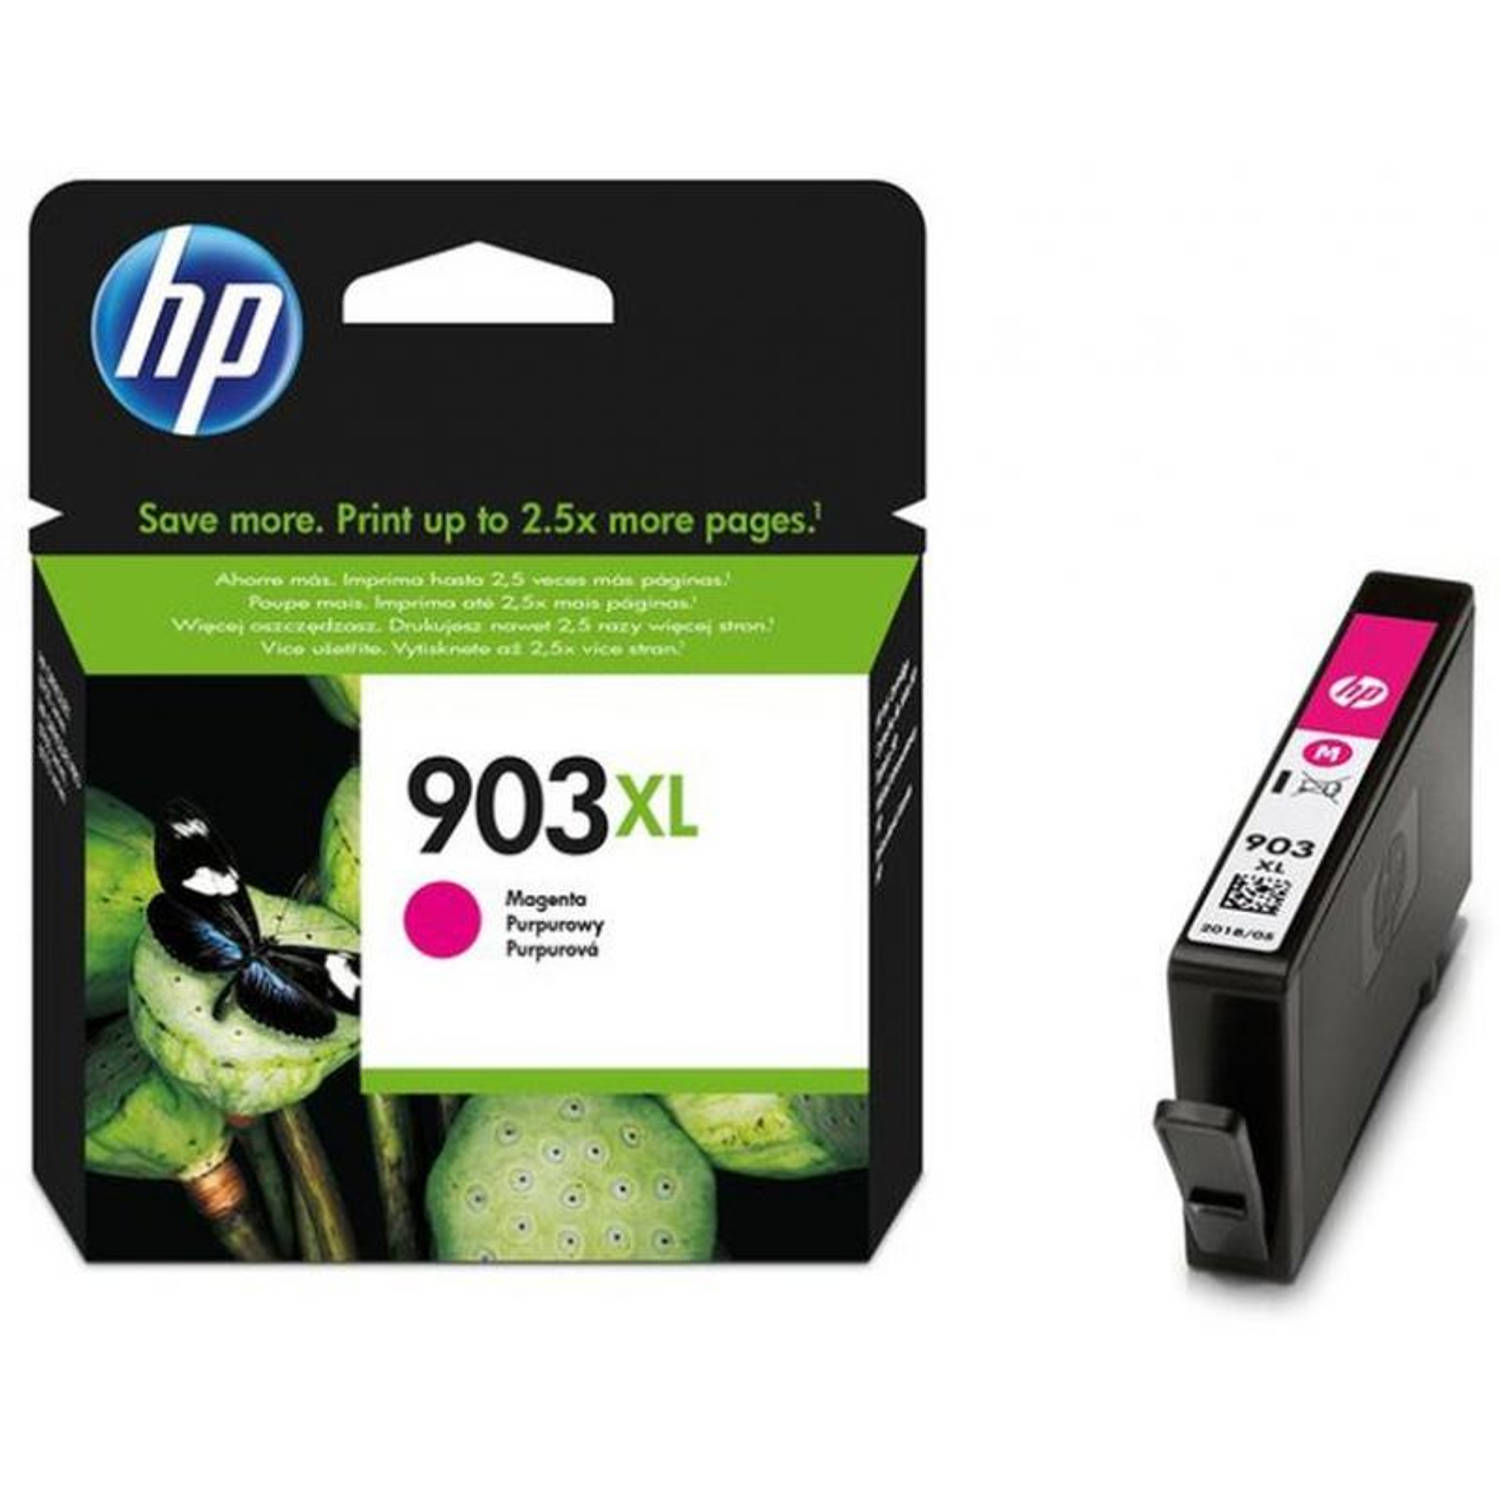 HP 903XL magenta Cartridge